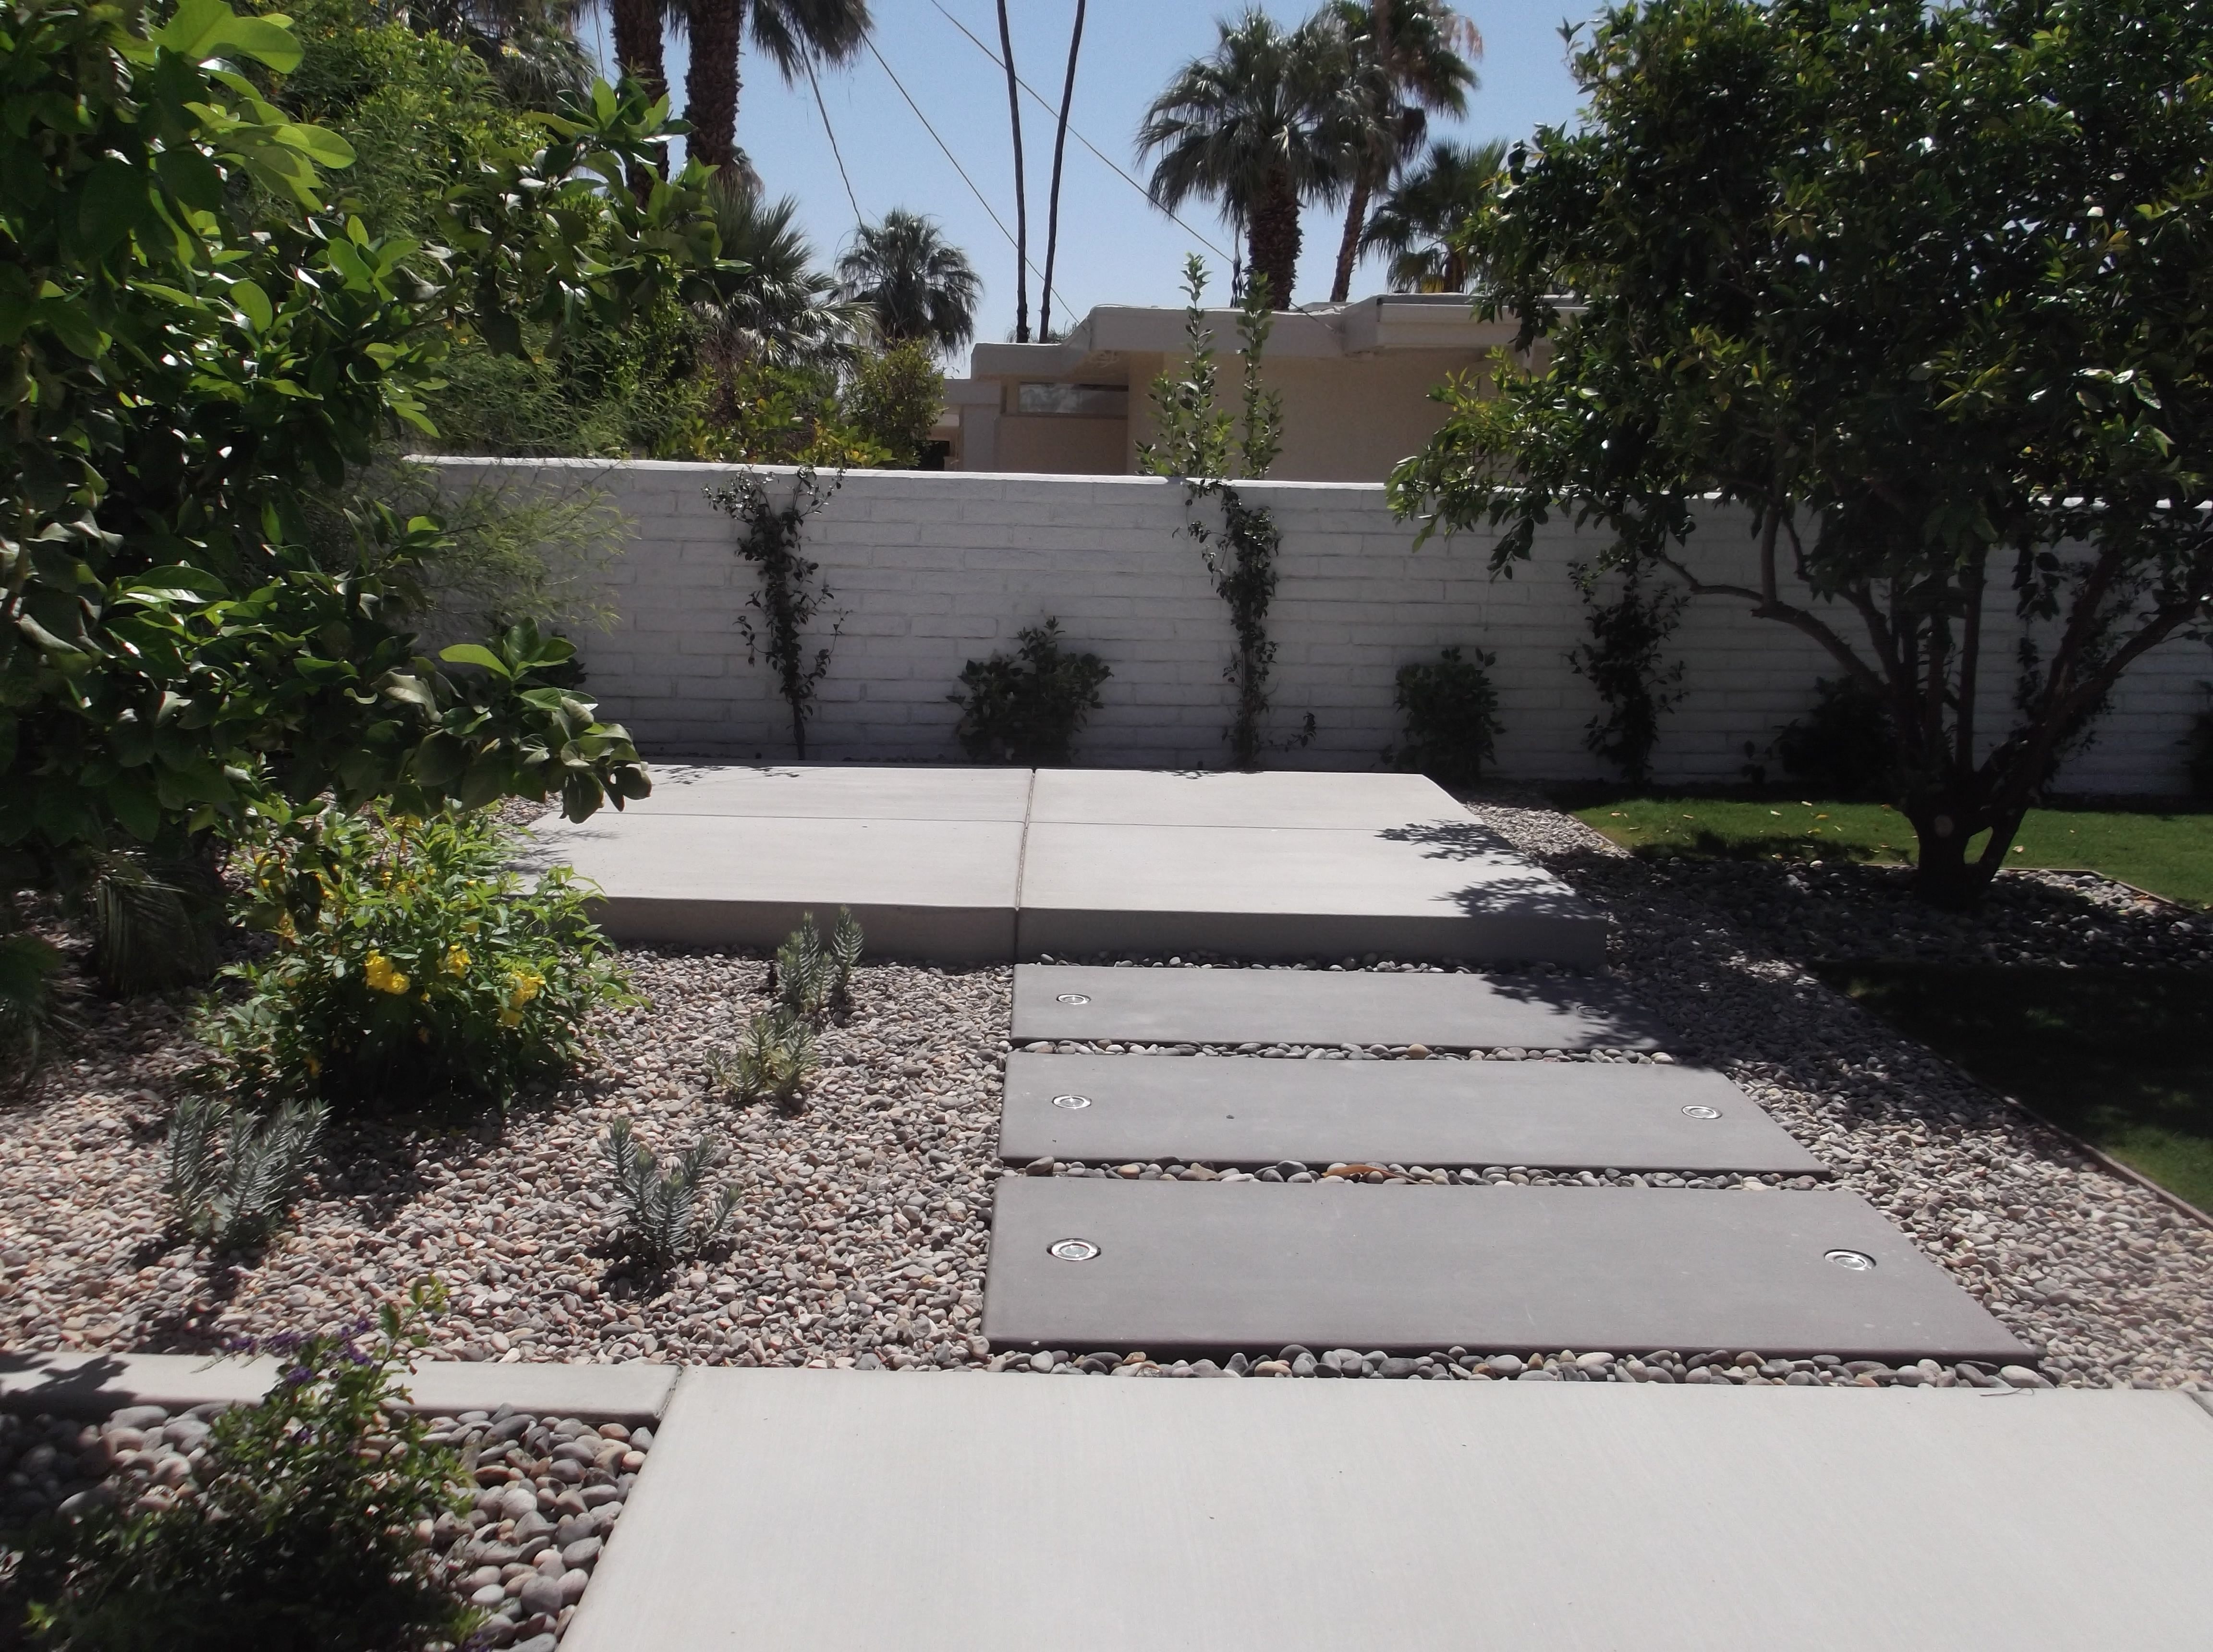 LED lights are embedded in this path that leads from the pool to a raised dining area nestled back between the citrus trees.